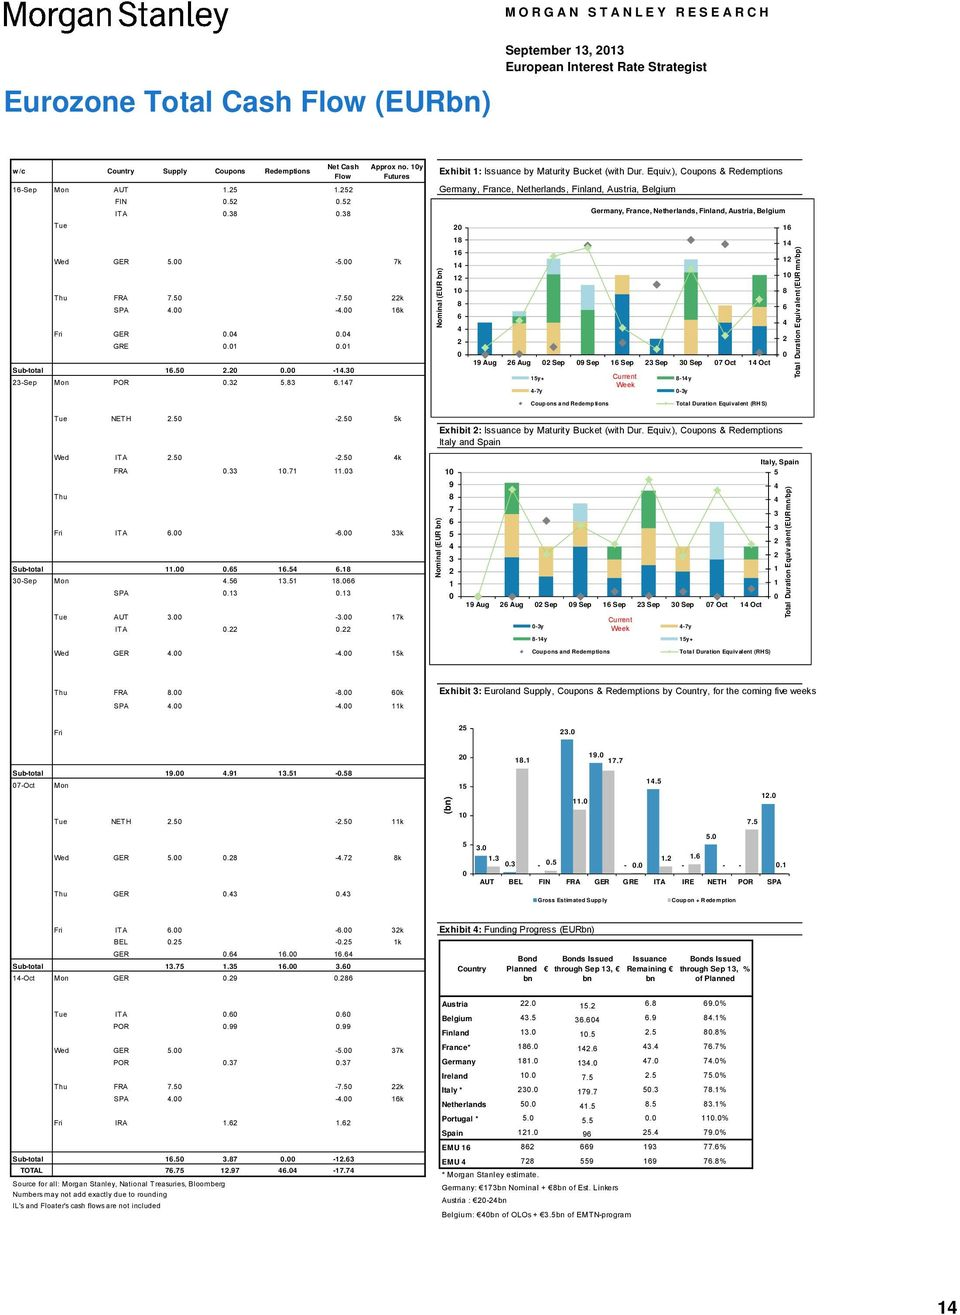 38.38 17-Sep Tue. 17-Sep. 17-Sep. 18-Sep Wed GER 5. -5. 7k 18-Sep. 18-Sep. 19-Sep Thu FRA 7.5-7.5 22k 19-Sep SPA 4. -4. 16k 19-Sep. 2-Sep Fri GER.4.4 2-Sep GRE.1.1 2-Sep. Sub-total 2.2-14.3 16.5. 23-Sep.